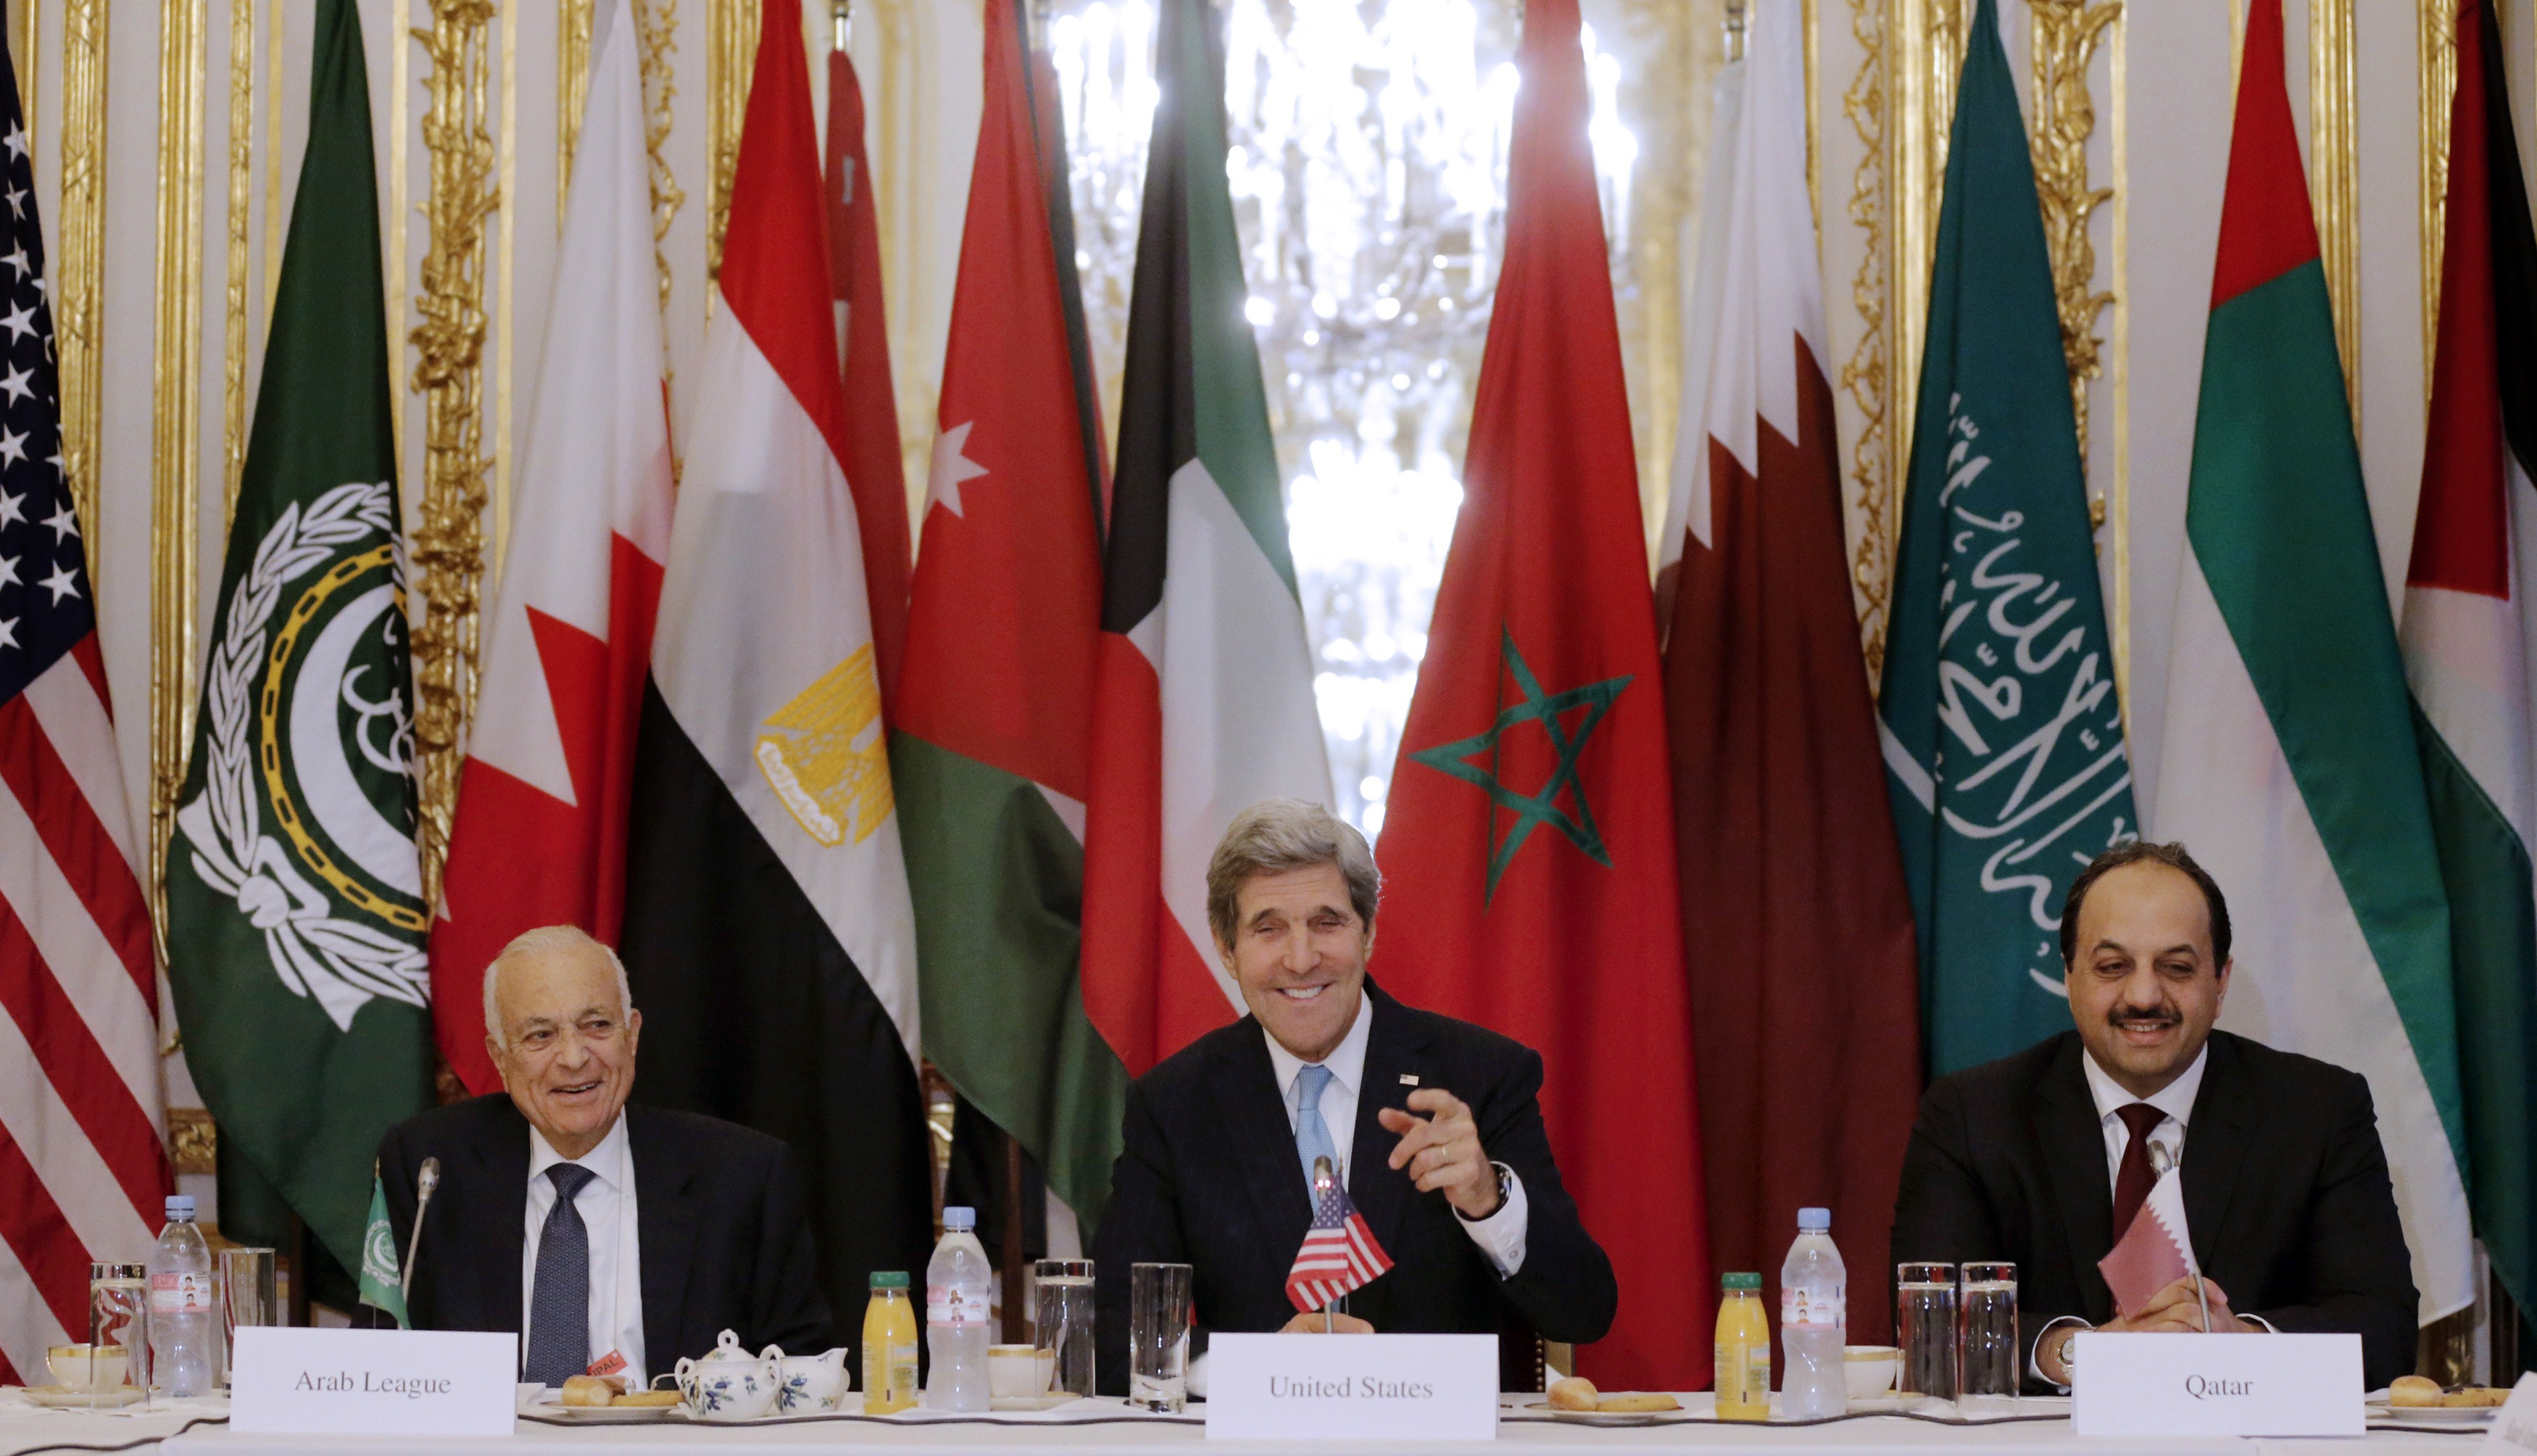 "U.S. Secretary of State John Kerry (C), Qatar's Foreign Minister Khalid bin Mohamed al-Attiya (R) and Arab League Secretary General Nabil Alarabi attend a meeting dedicated to the conflict in Syria at the U.S. embassy in Paris ahead of a gathering of the 'Friends of Syria' group, on January 12, 2014. Ahmad Jarba, the leader of Syria's opposition National Coalition, said today that the US-led ""Friends of Syria"" grouping had agreed that President Bashar al-Assad and his family will have no role in the country's future.  (AFP PHOTO / POOL / Christian Hartmann)"